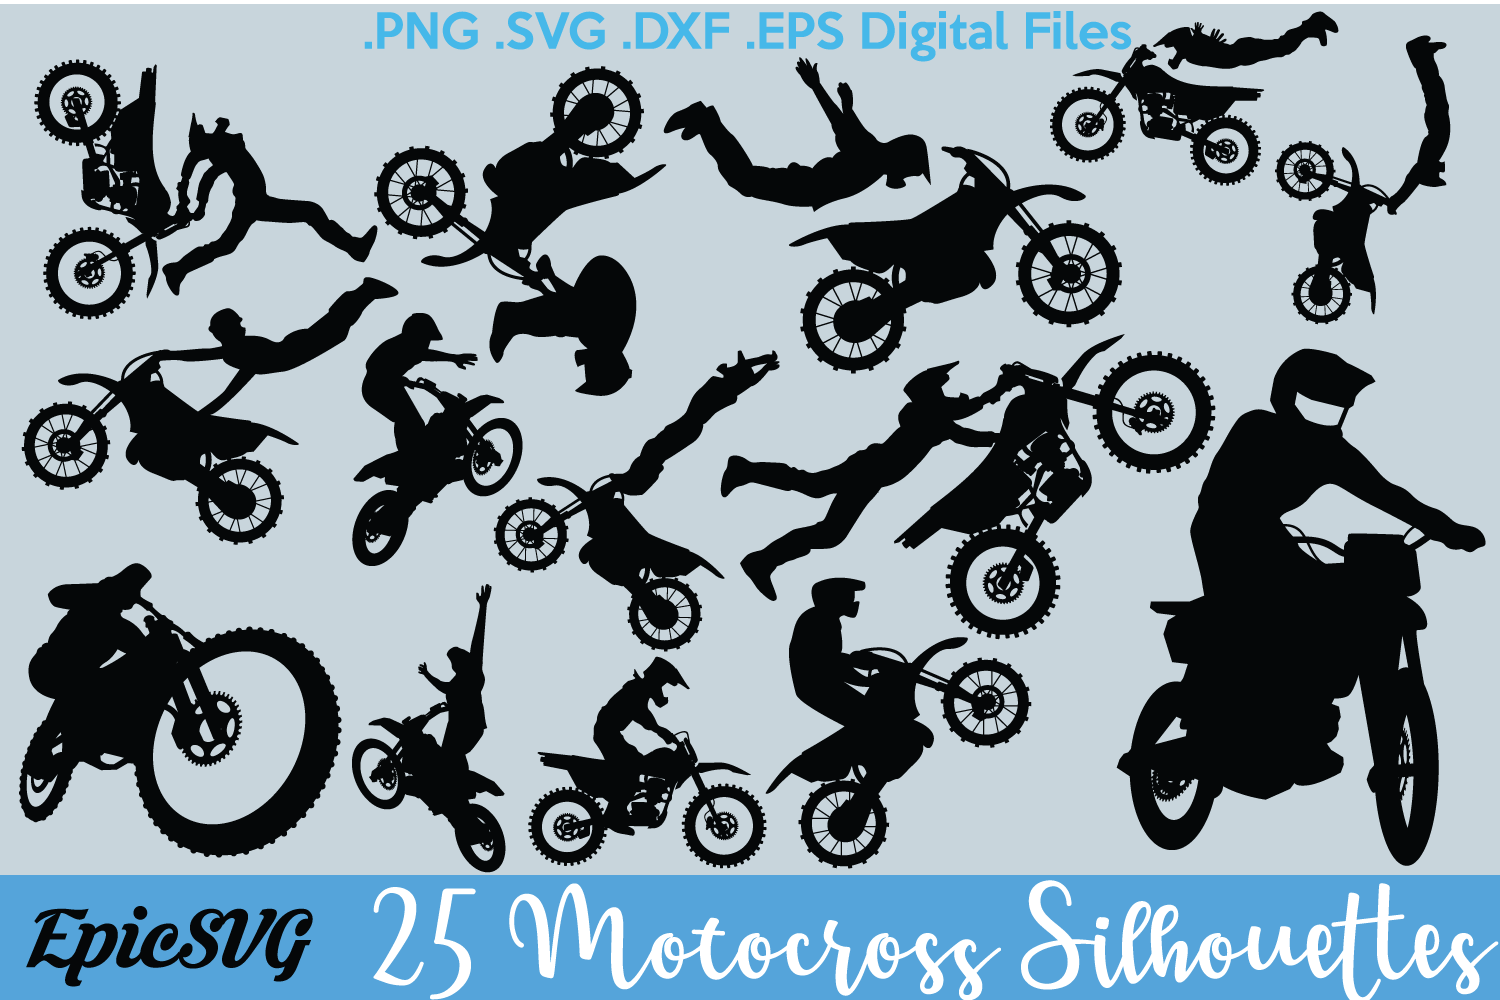 hight resolution of eps dxf png dirtbike